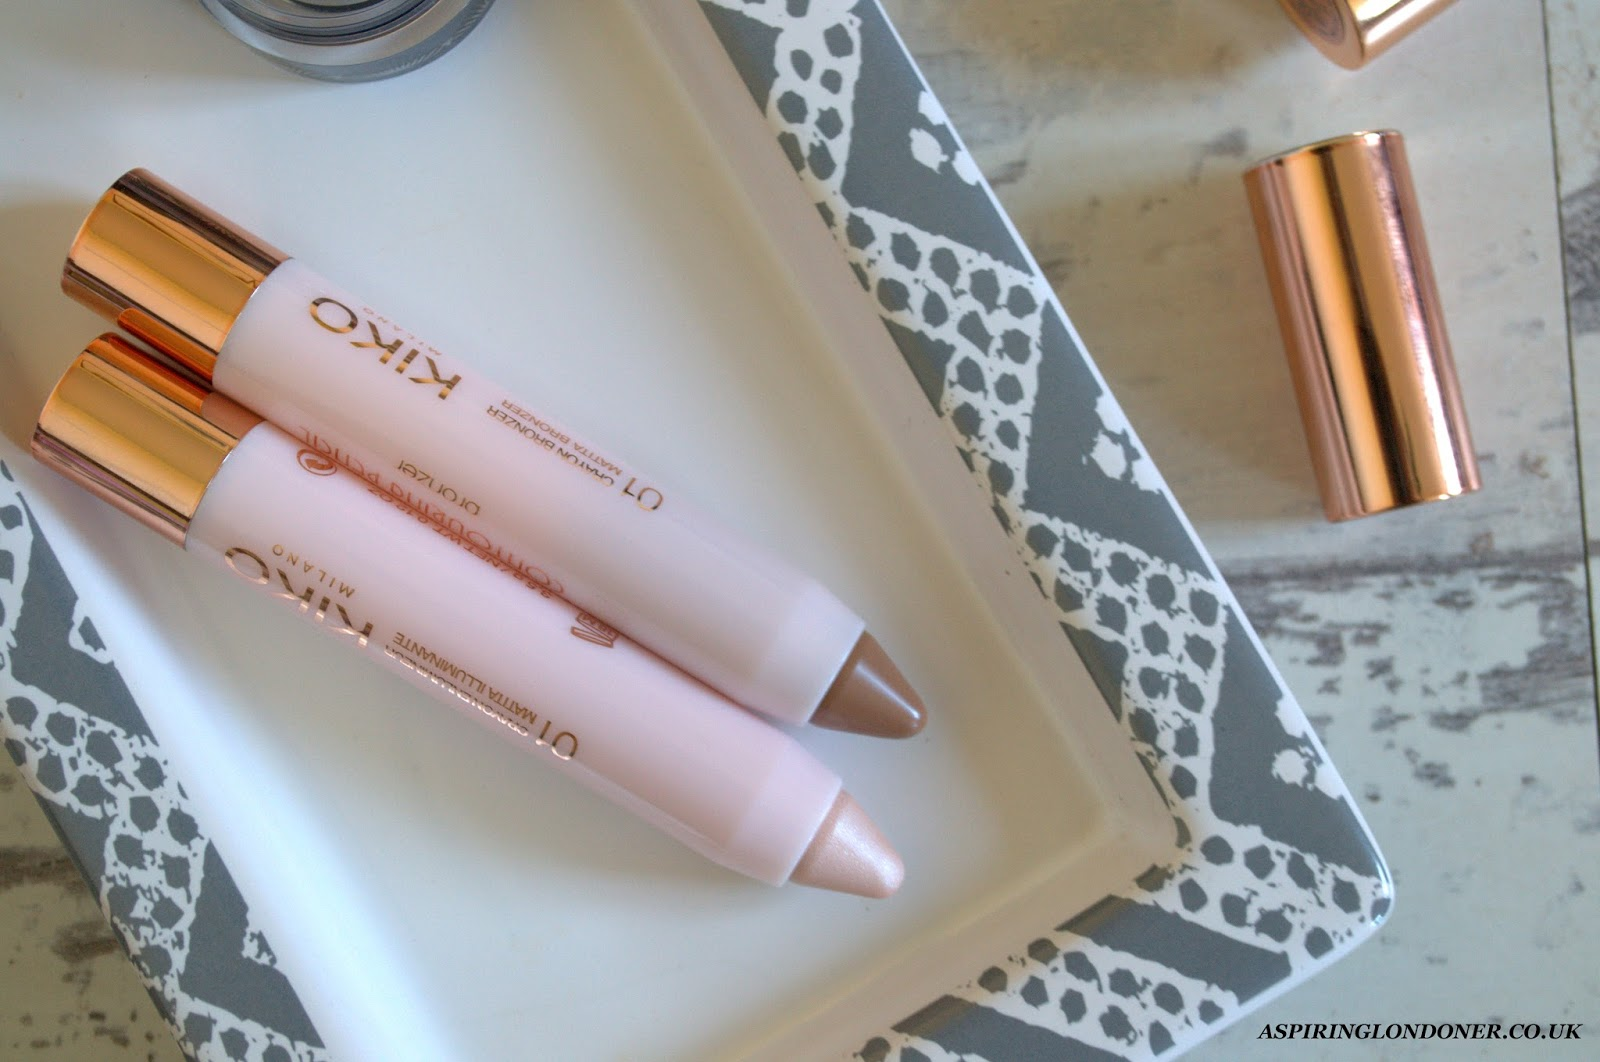 Kiko Rebel Romantic Contouring Pencil Set Review - Aspiring Londoner